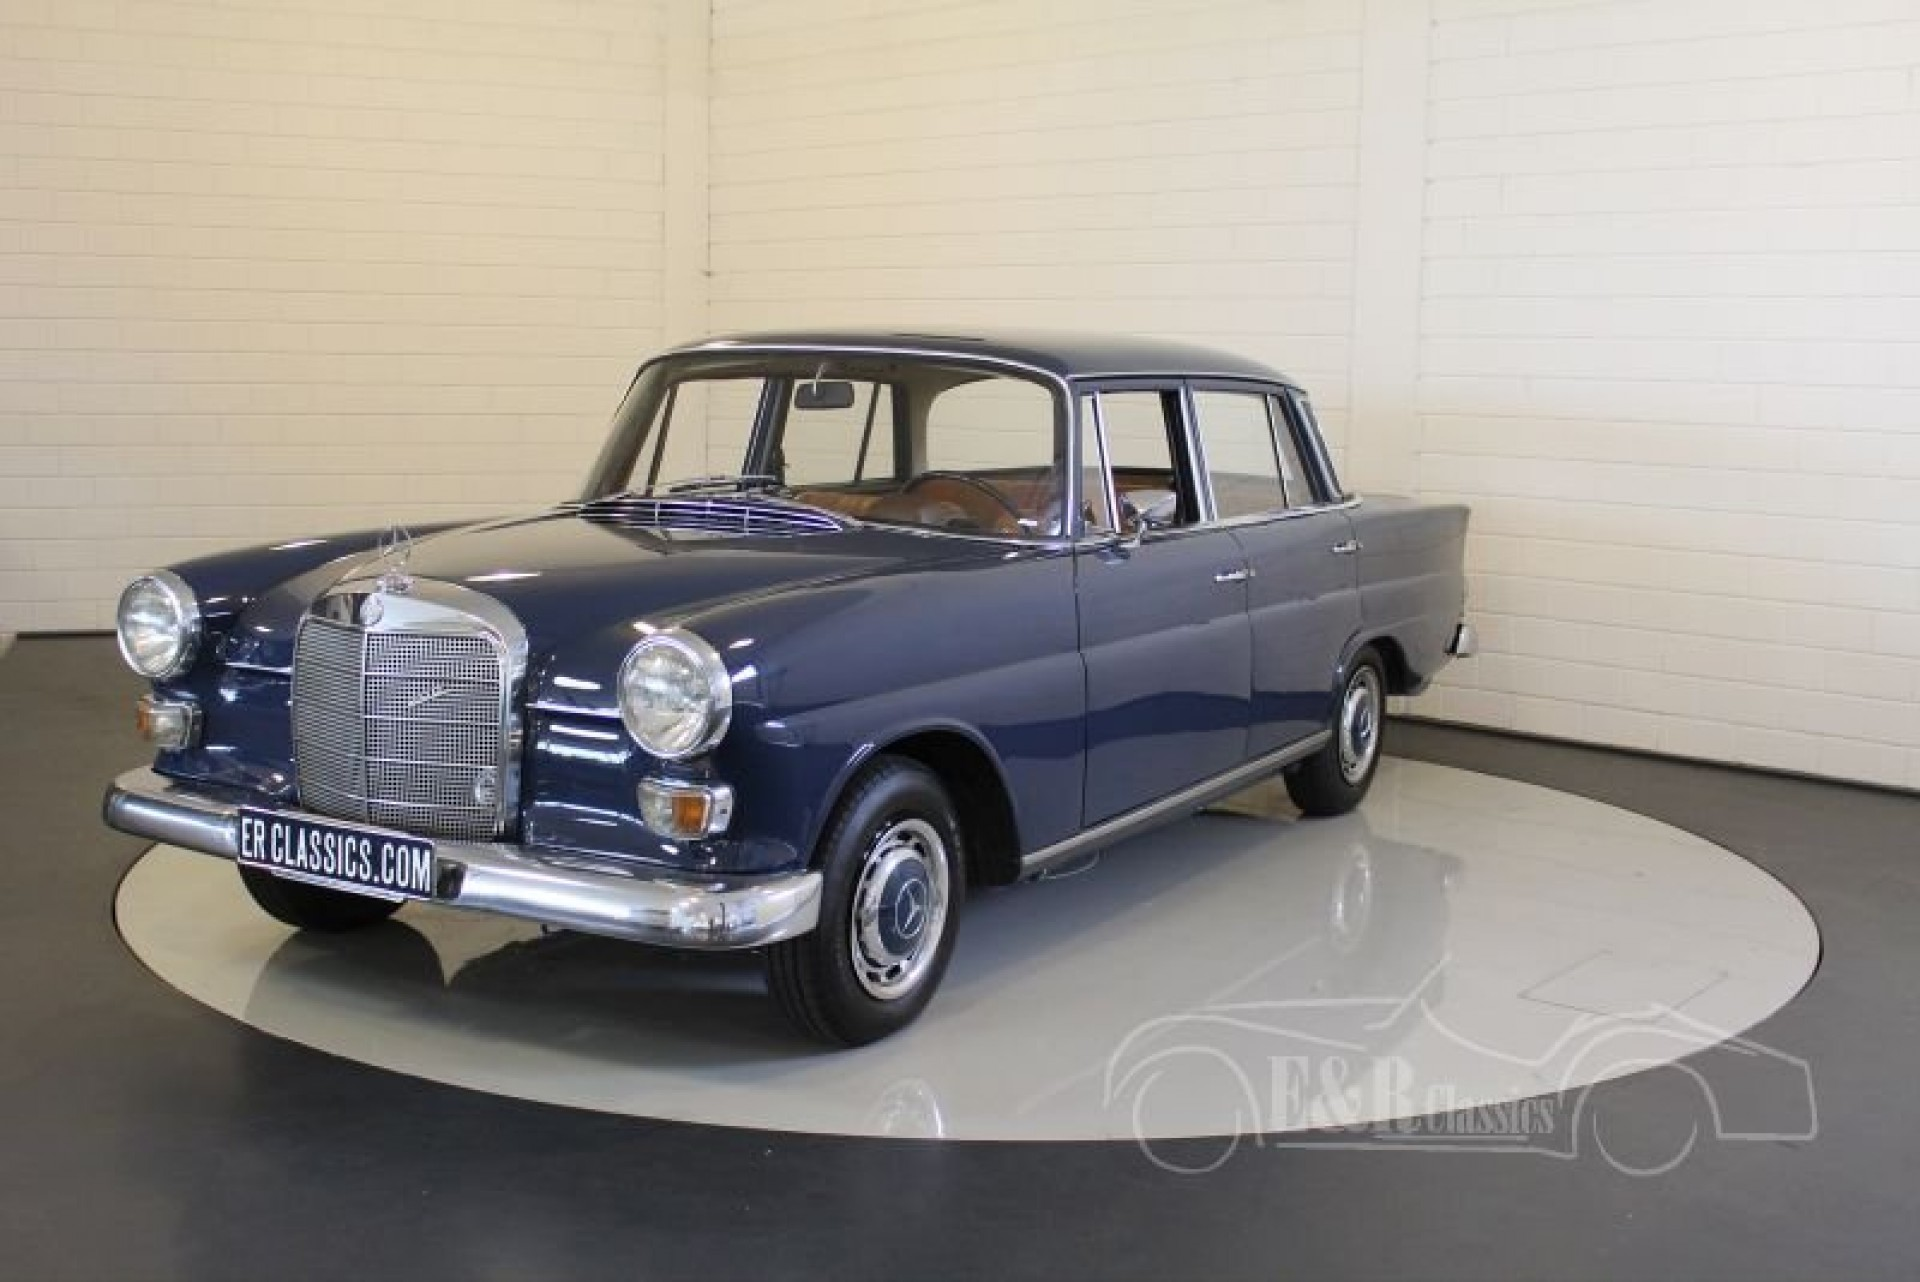 Mercedes benz 200 heckflosse 1967 for sale at erclassics for Mercedes benz 200